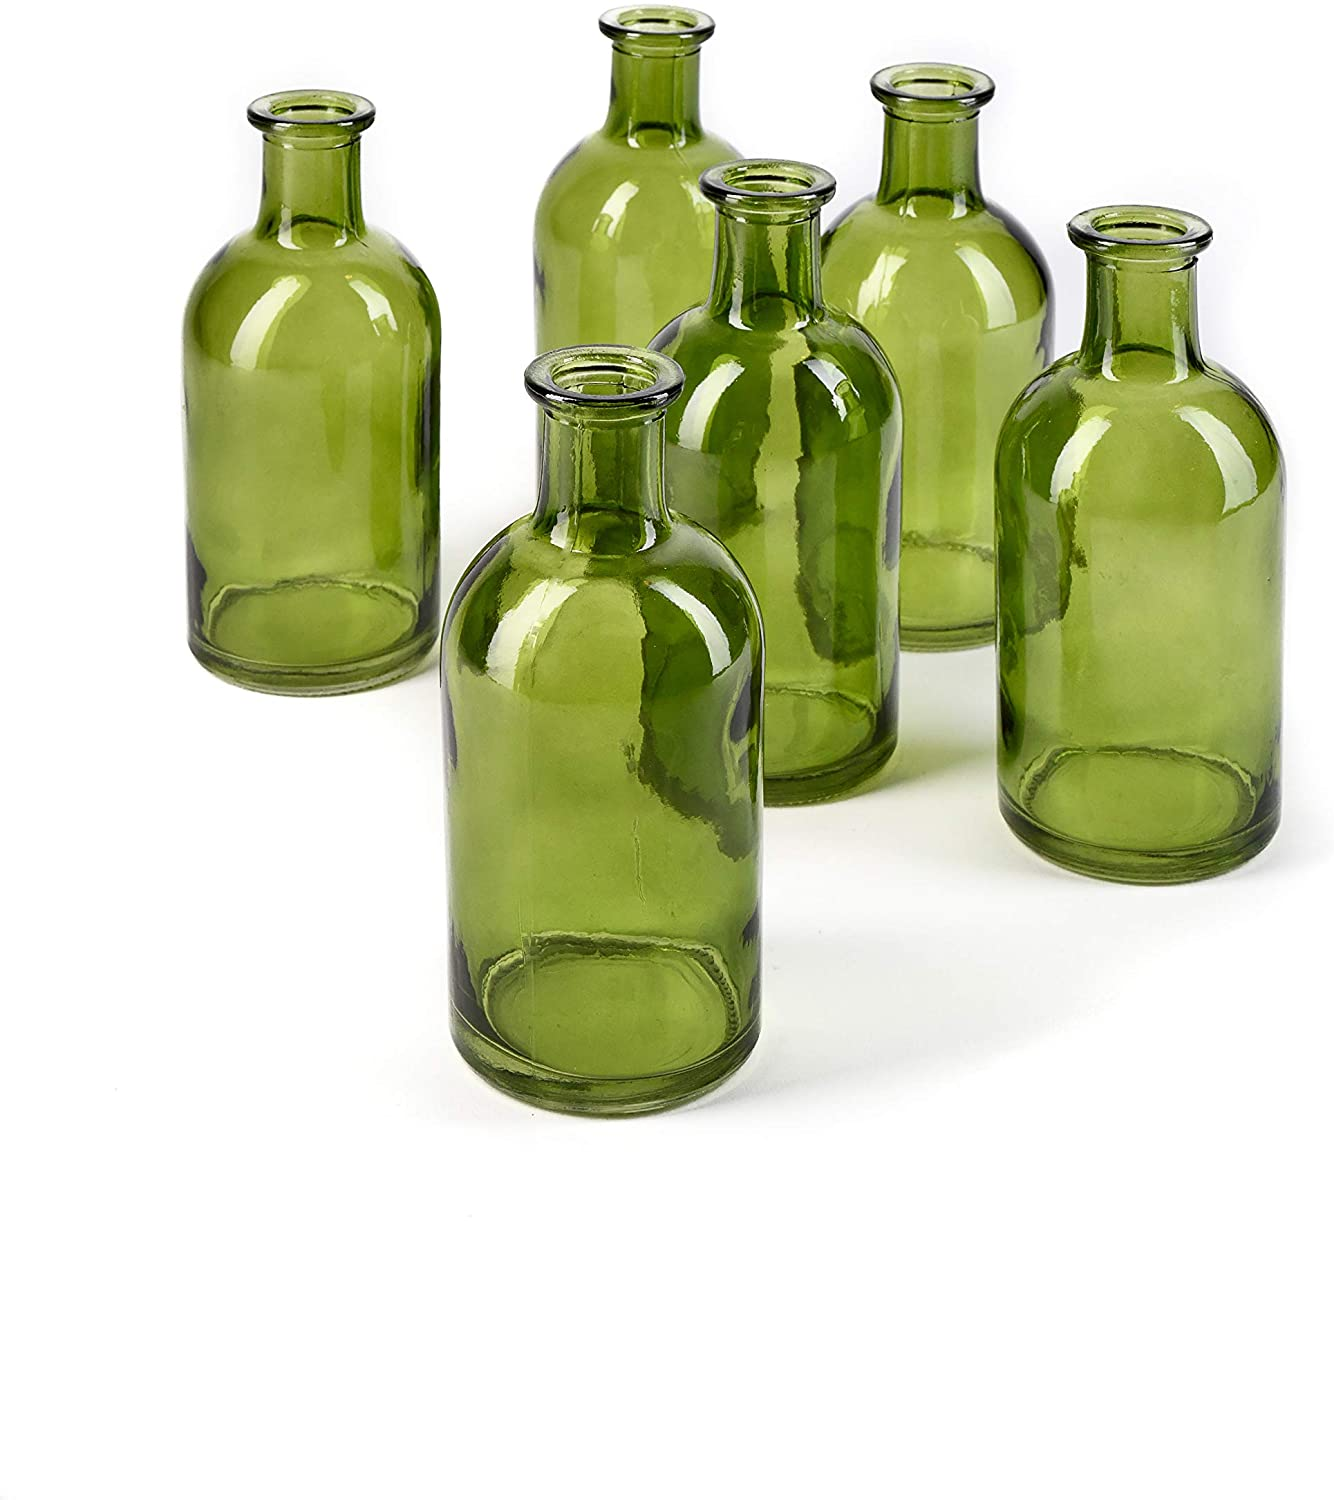 Serene Spaces Living Bud Vases, Apothecary Jars, Decorative Glass Bottles, Centerpiece for Wedding Reception, Mini Flower Vases, Small Medicine Bottles for Home Decor (Dark Green, Set of 6)